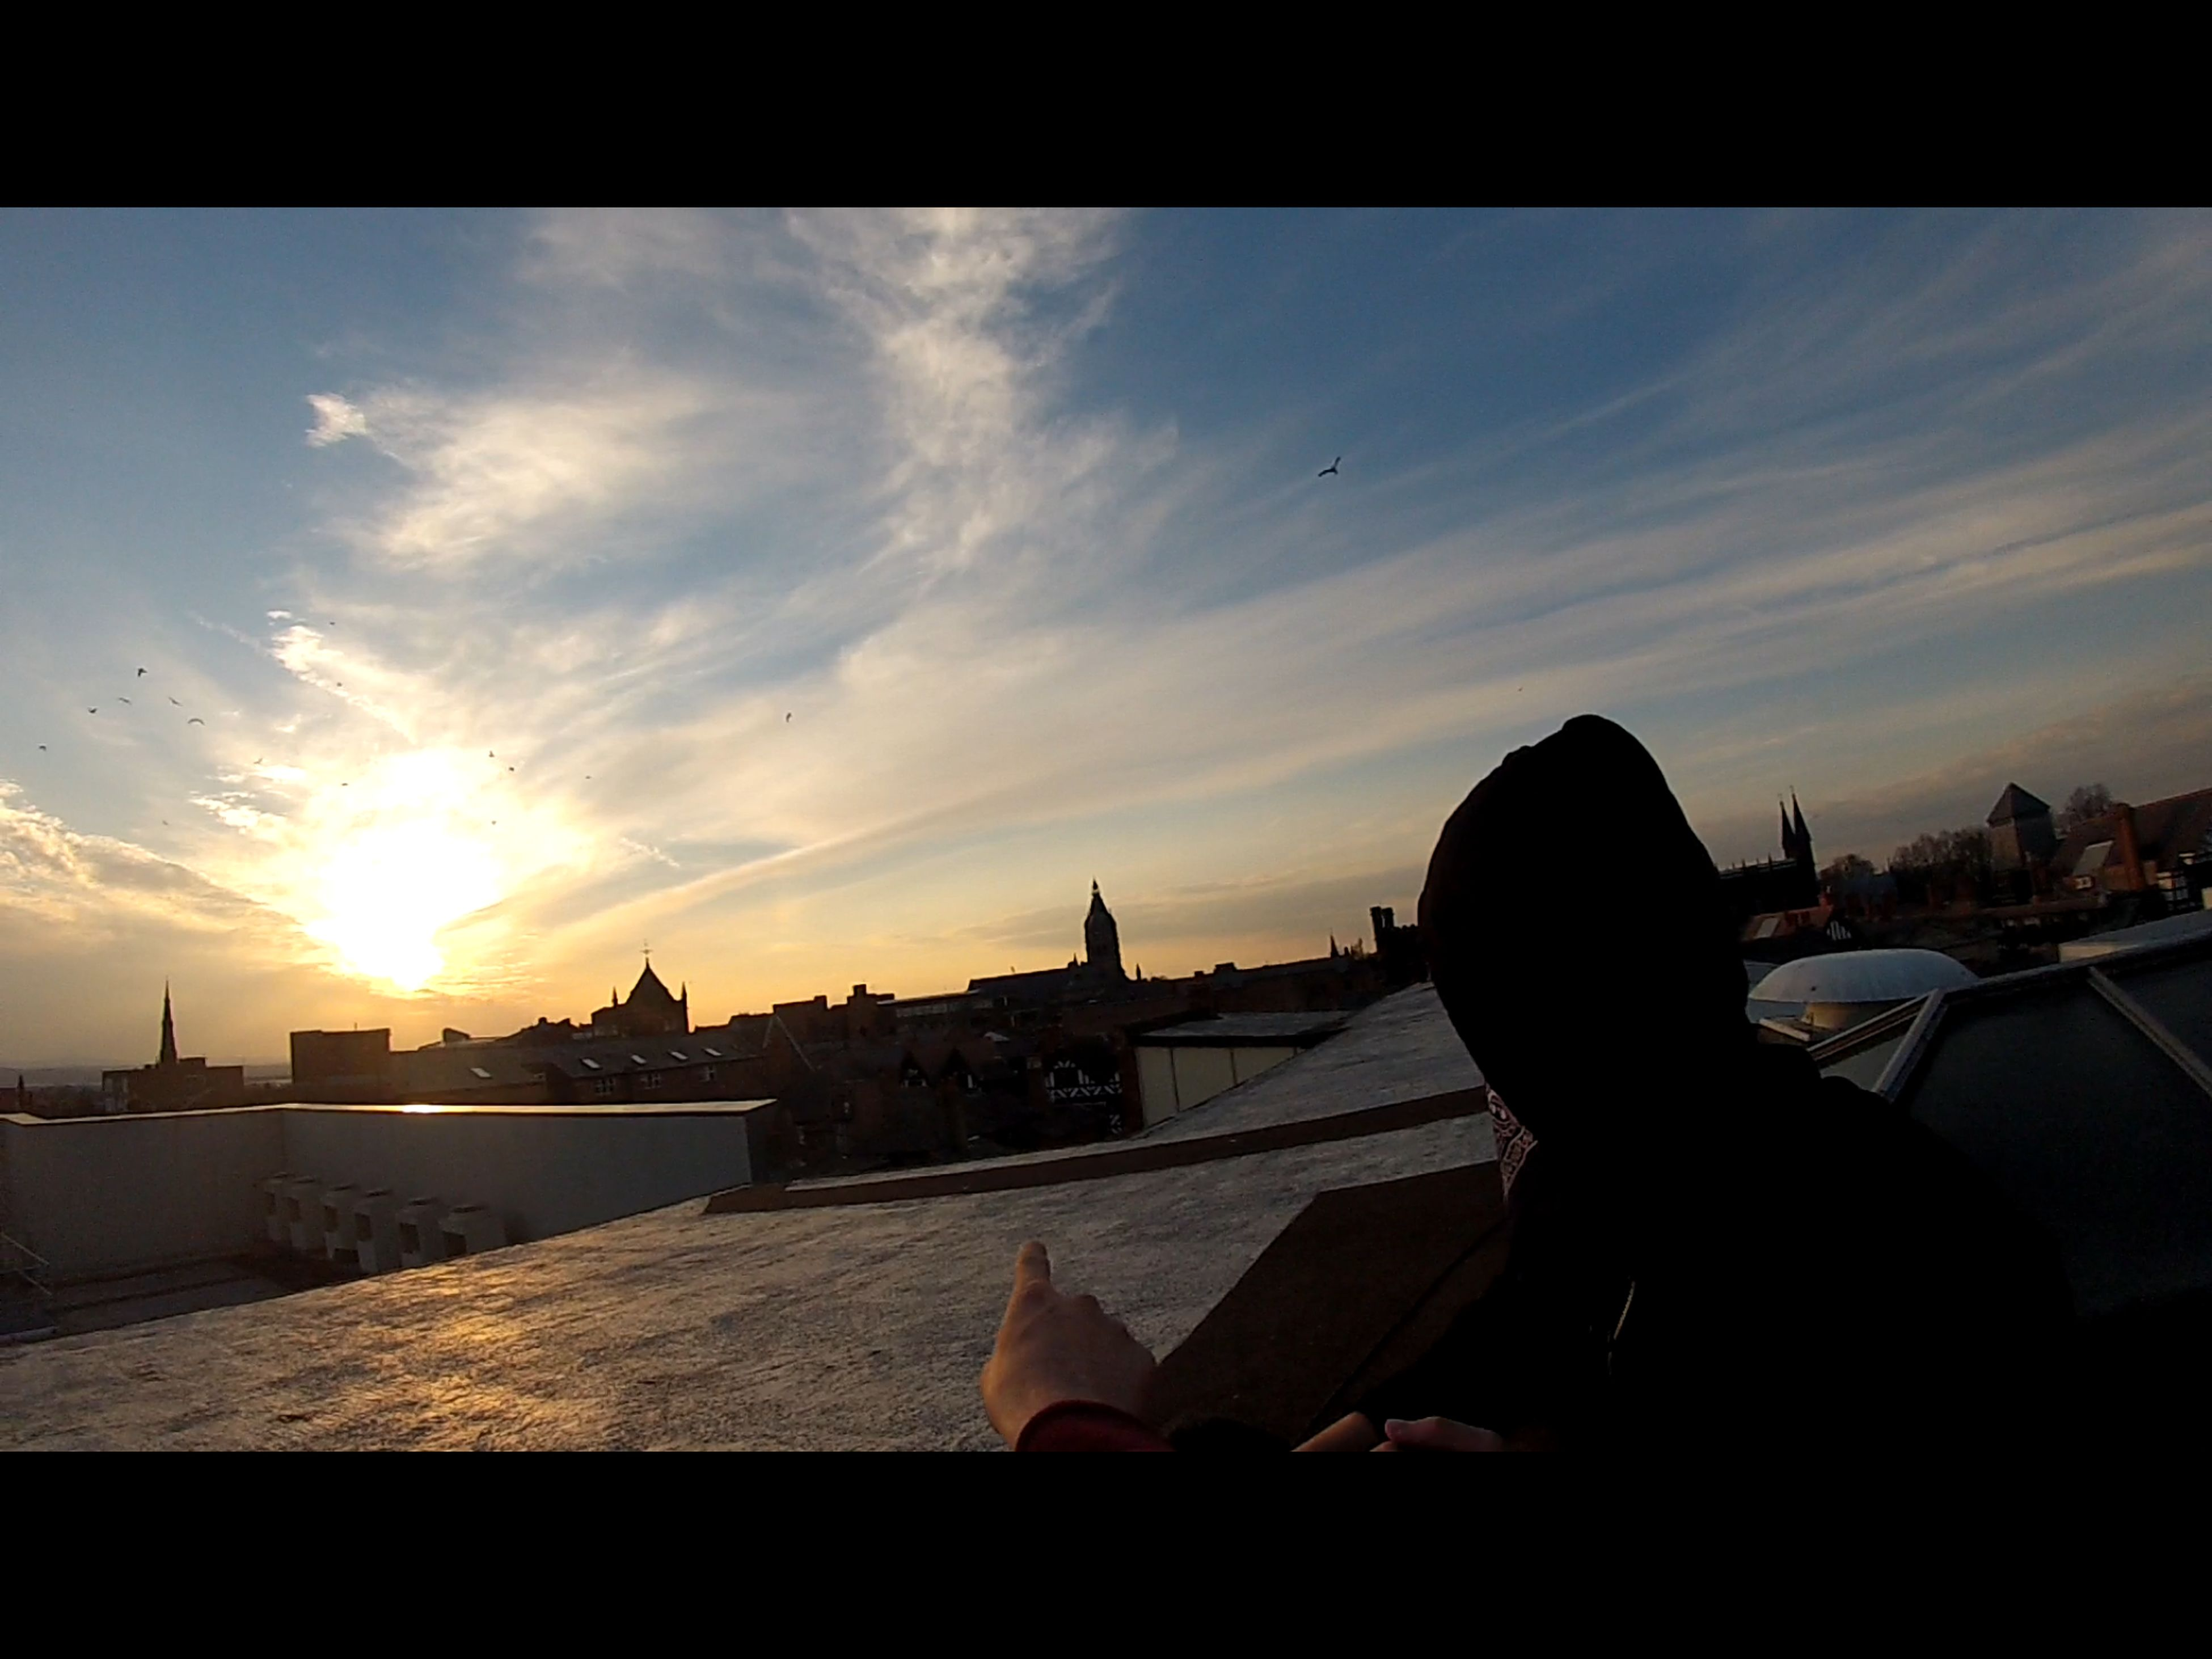 My Hobby Freerunning, while looking over the horizon. Taken with a GoPro Hero 3 Taking Photos Enjoying Life Check This Out